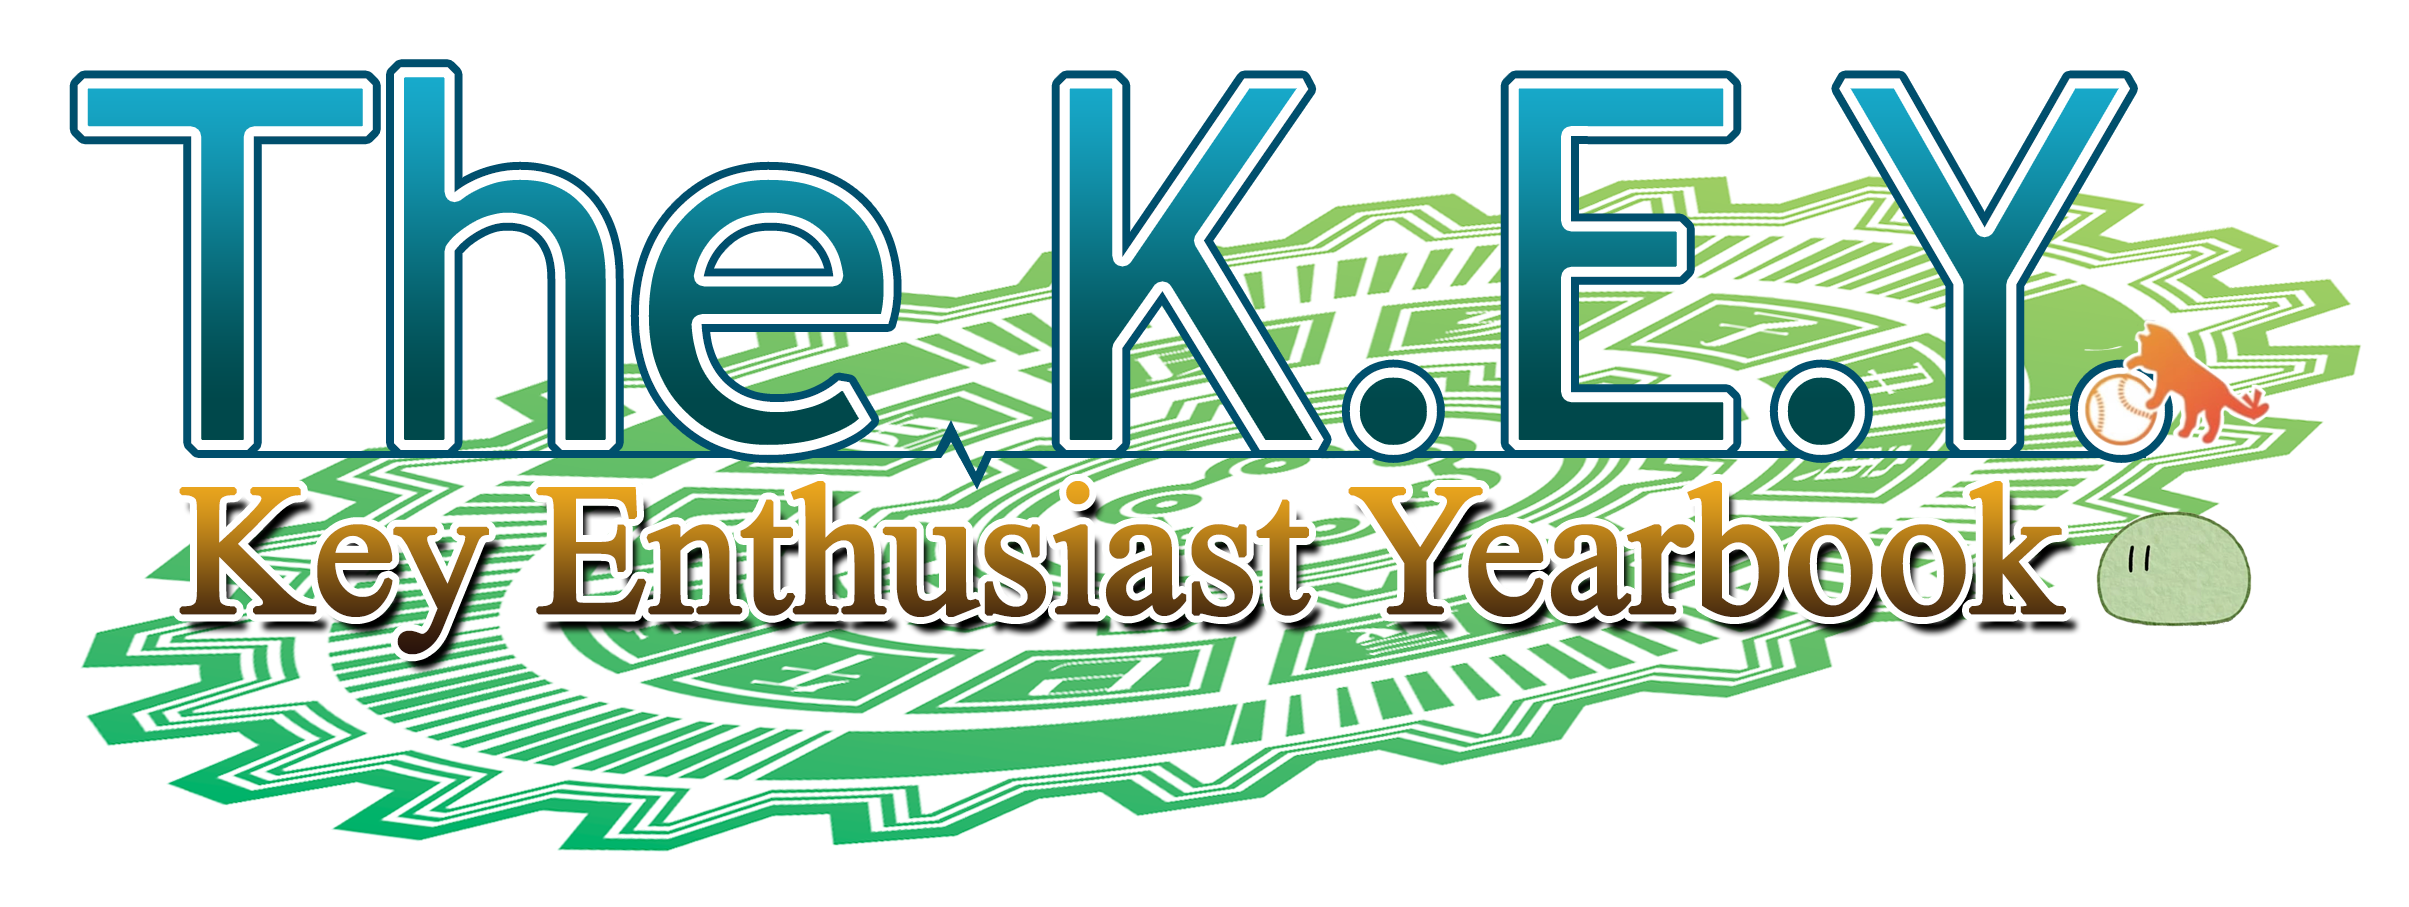 Introducing The K.E.Y. ~ Key Enthusiast Yearbook